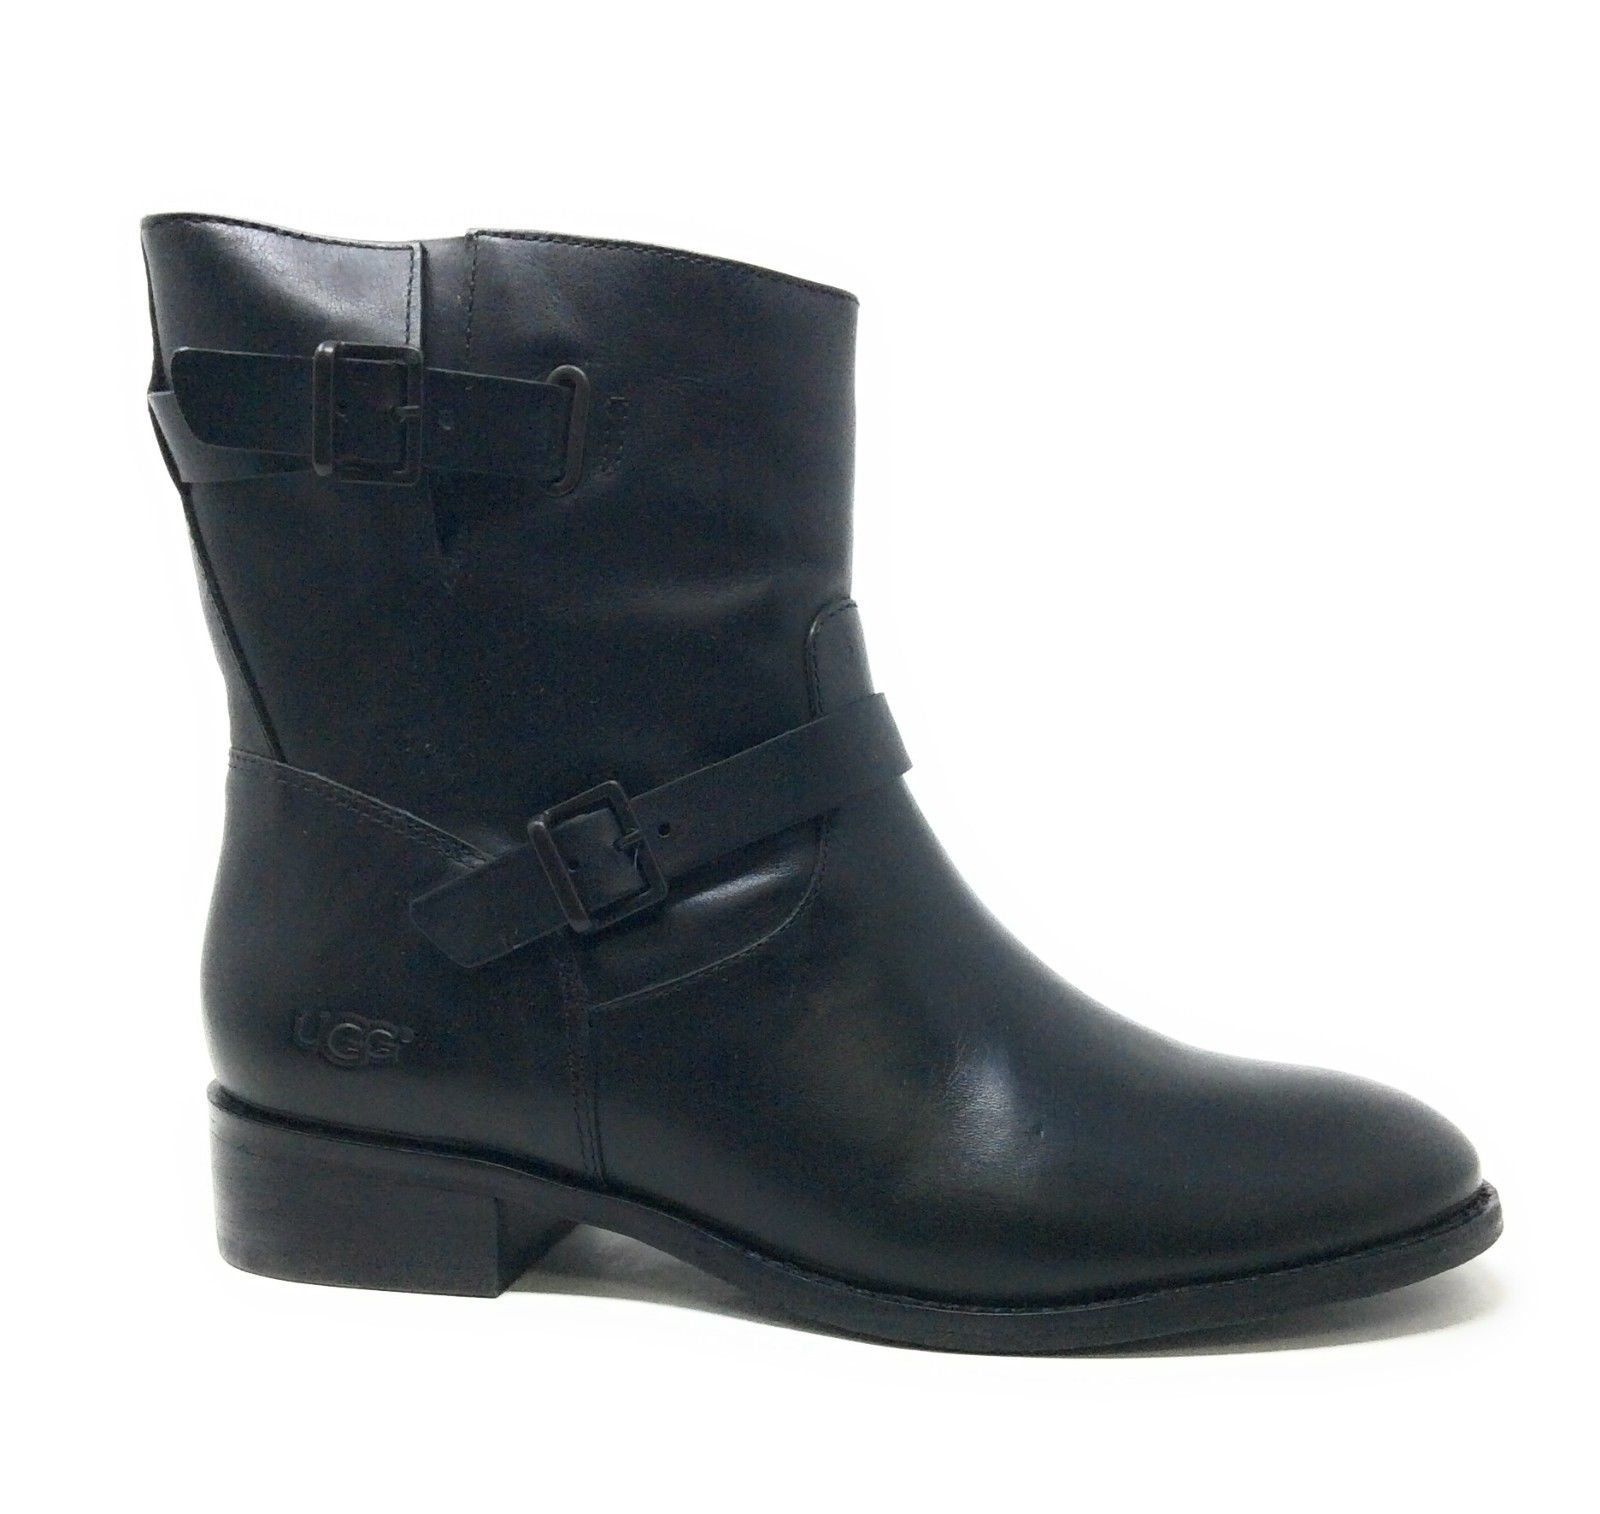 UGG Womens Fletcher Motorcycle Short Boot Water Resistant Black Leather 6.5